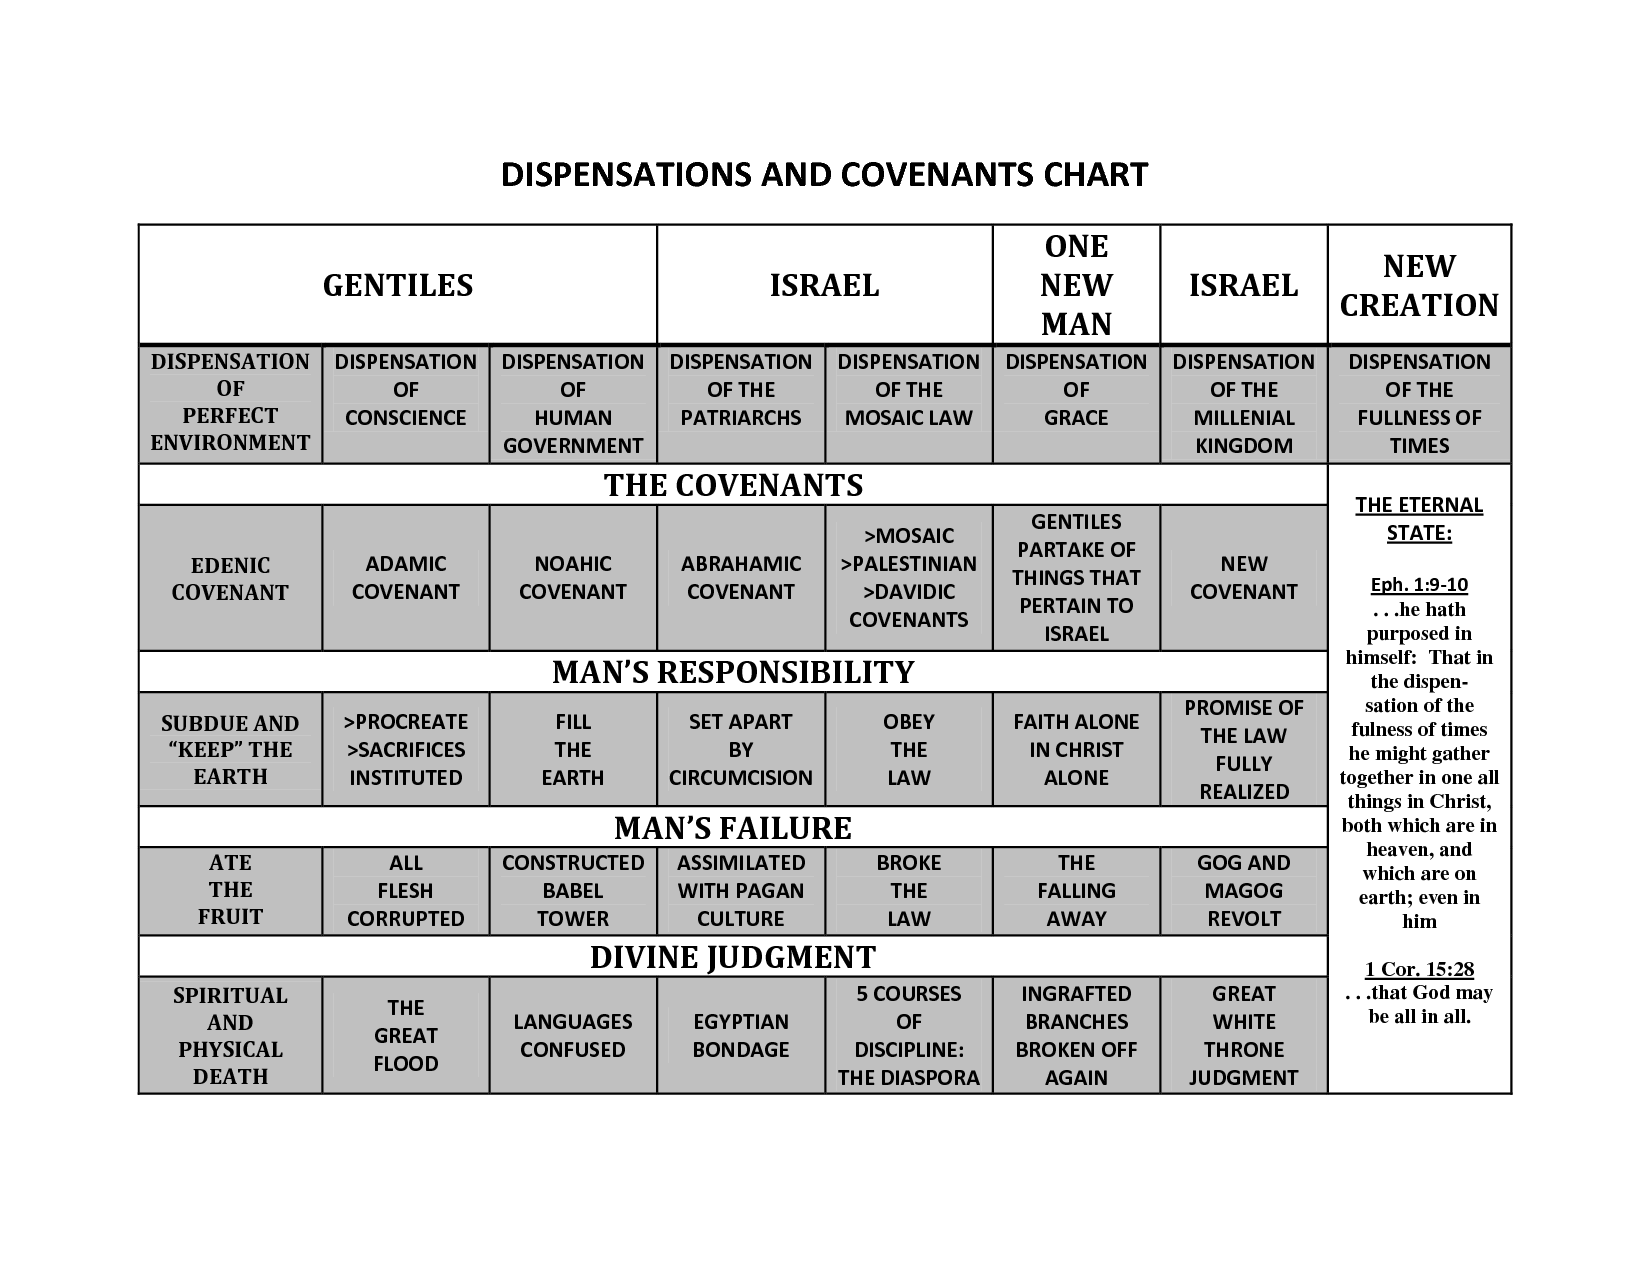 diagram of covenant dispensations and covenants | he is my everything ...